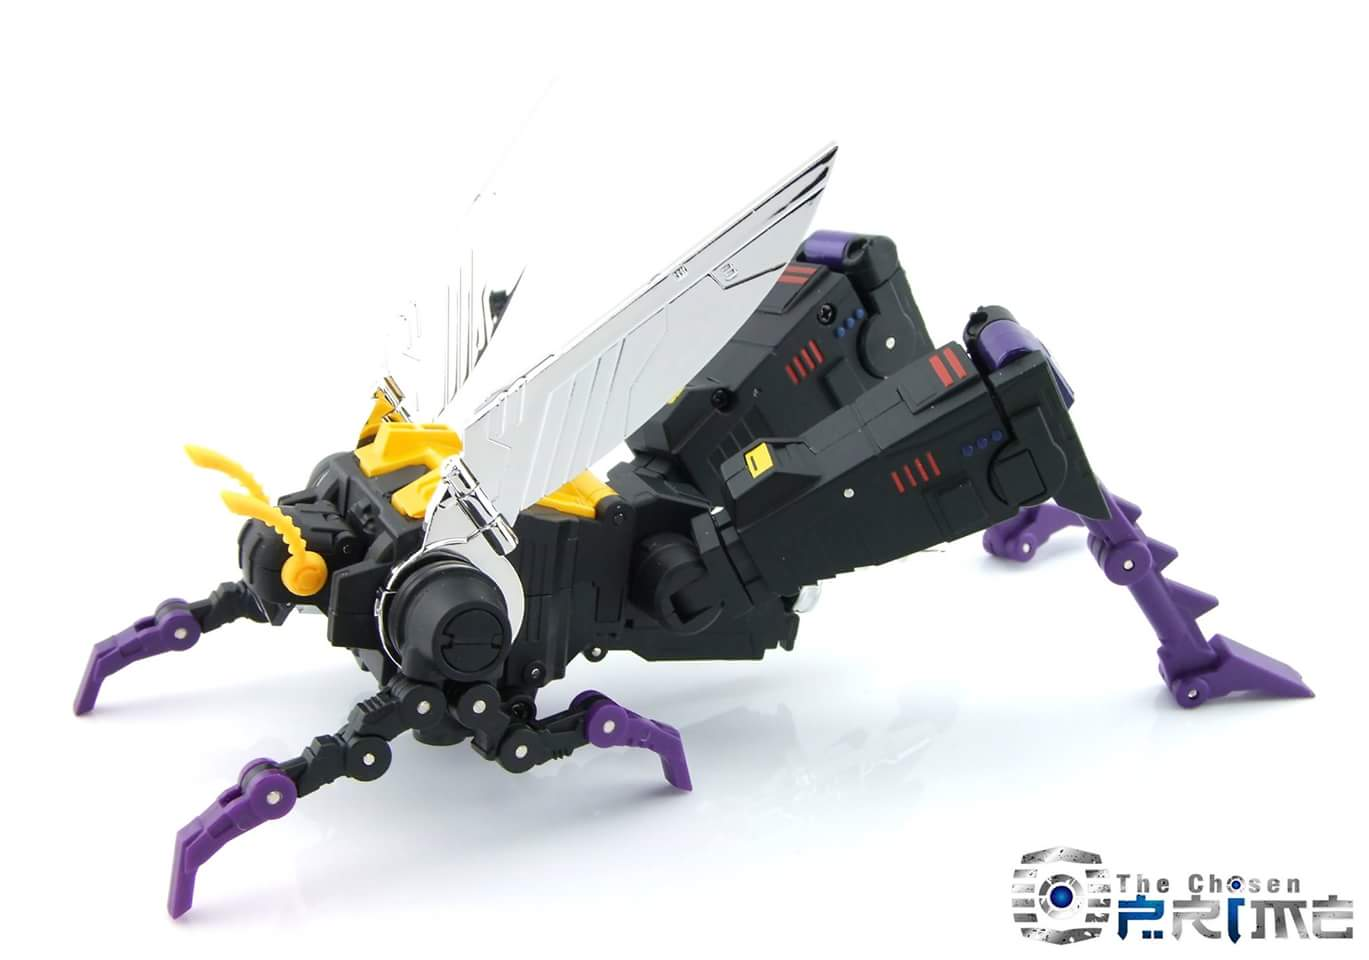 [Fanstoys] Produit Tiers - Jouet FT-12 Grenadier / FT-13 Mercenary / FT-14 Forager - aka Insecticons - Page 3 C6lVHqHv